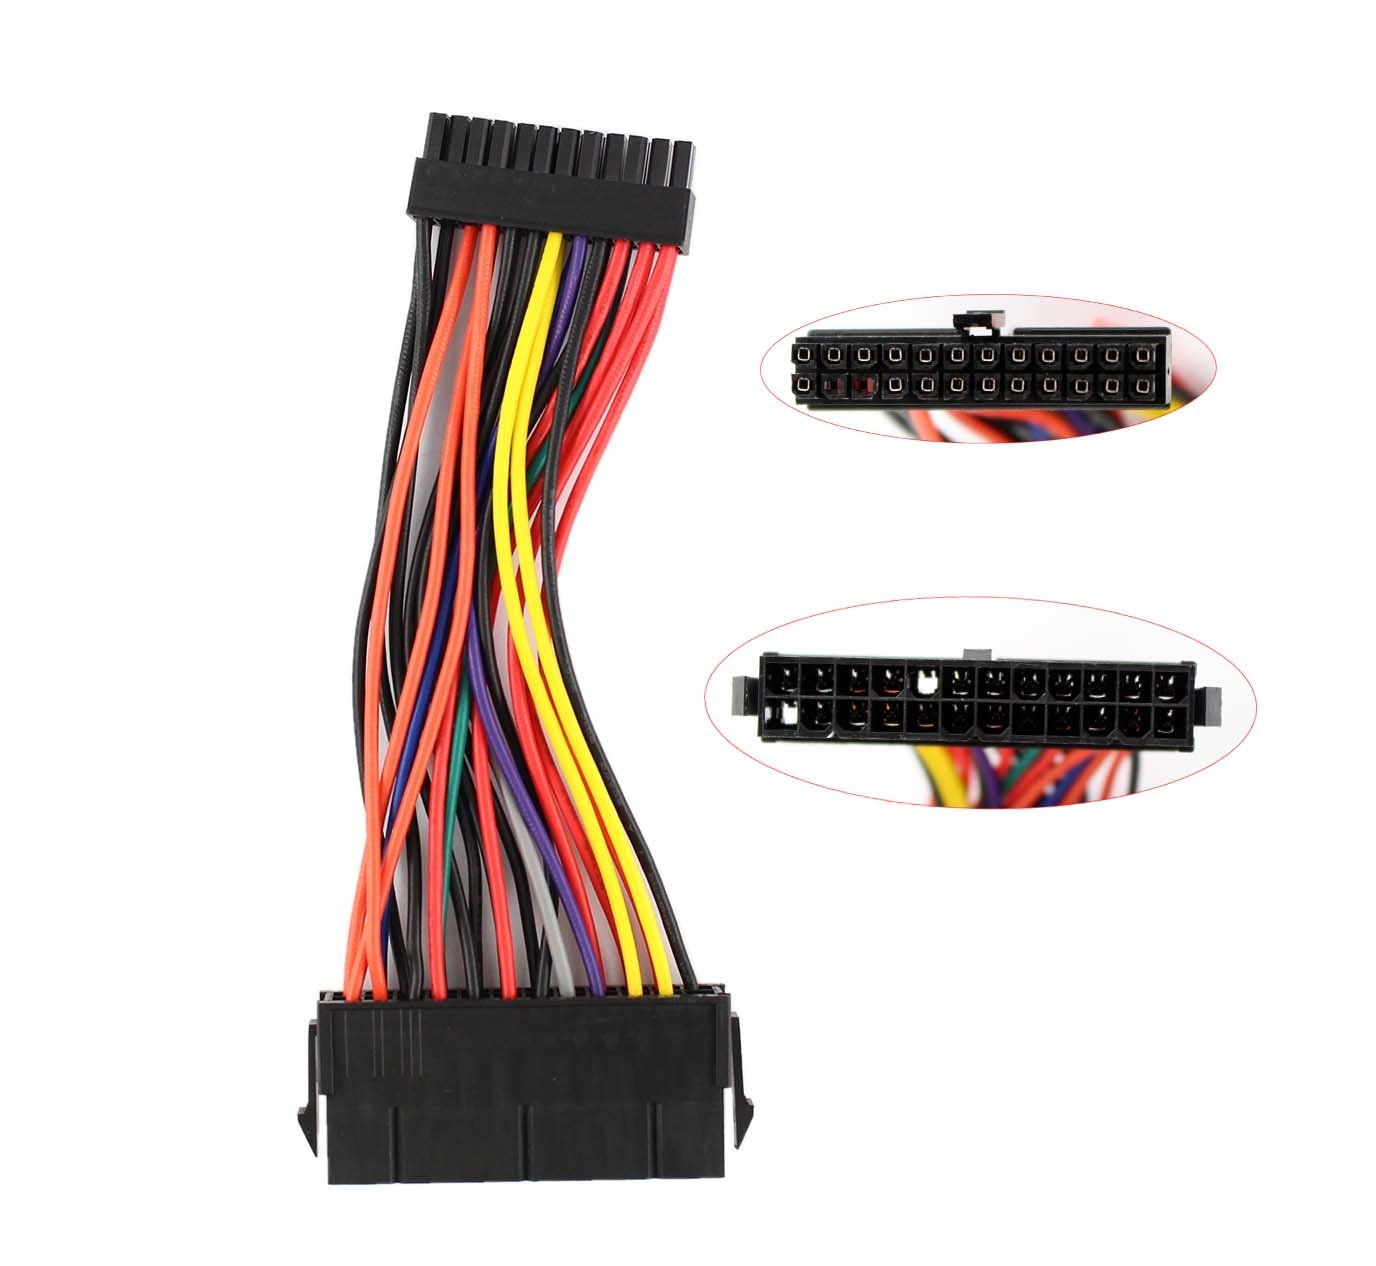 Xtremeamazing New For Dell Optiplex 760 780 960 980 Sff 24 Pin Power Supply Wiring Diagram Atx To Mini Cable Computers Accessories